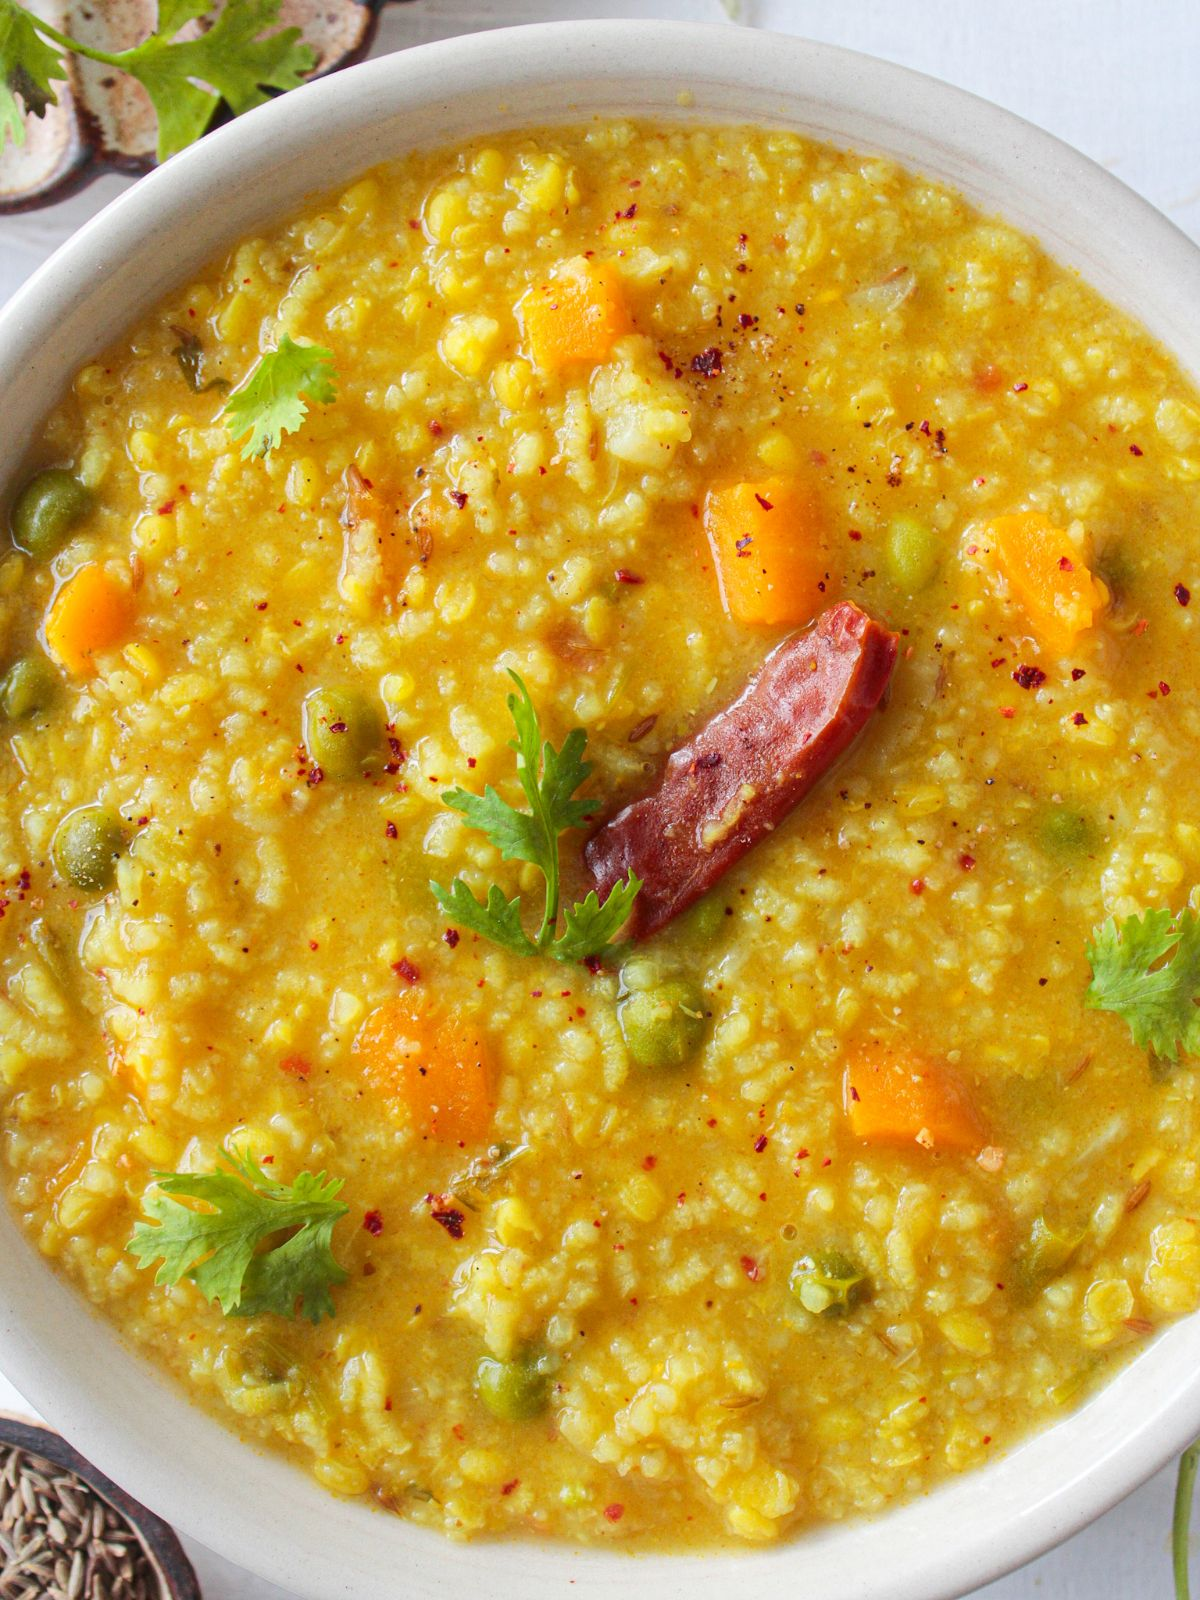 White bowl of khichdi topped with red chili and cilantro